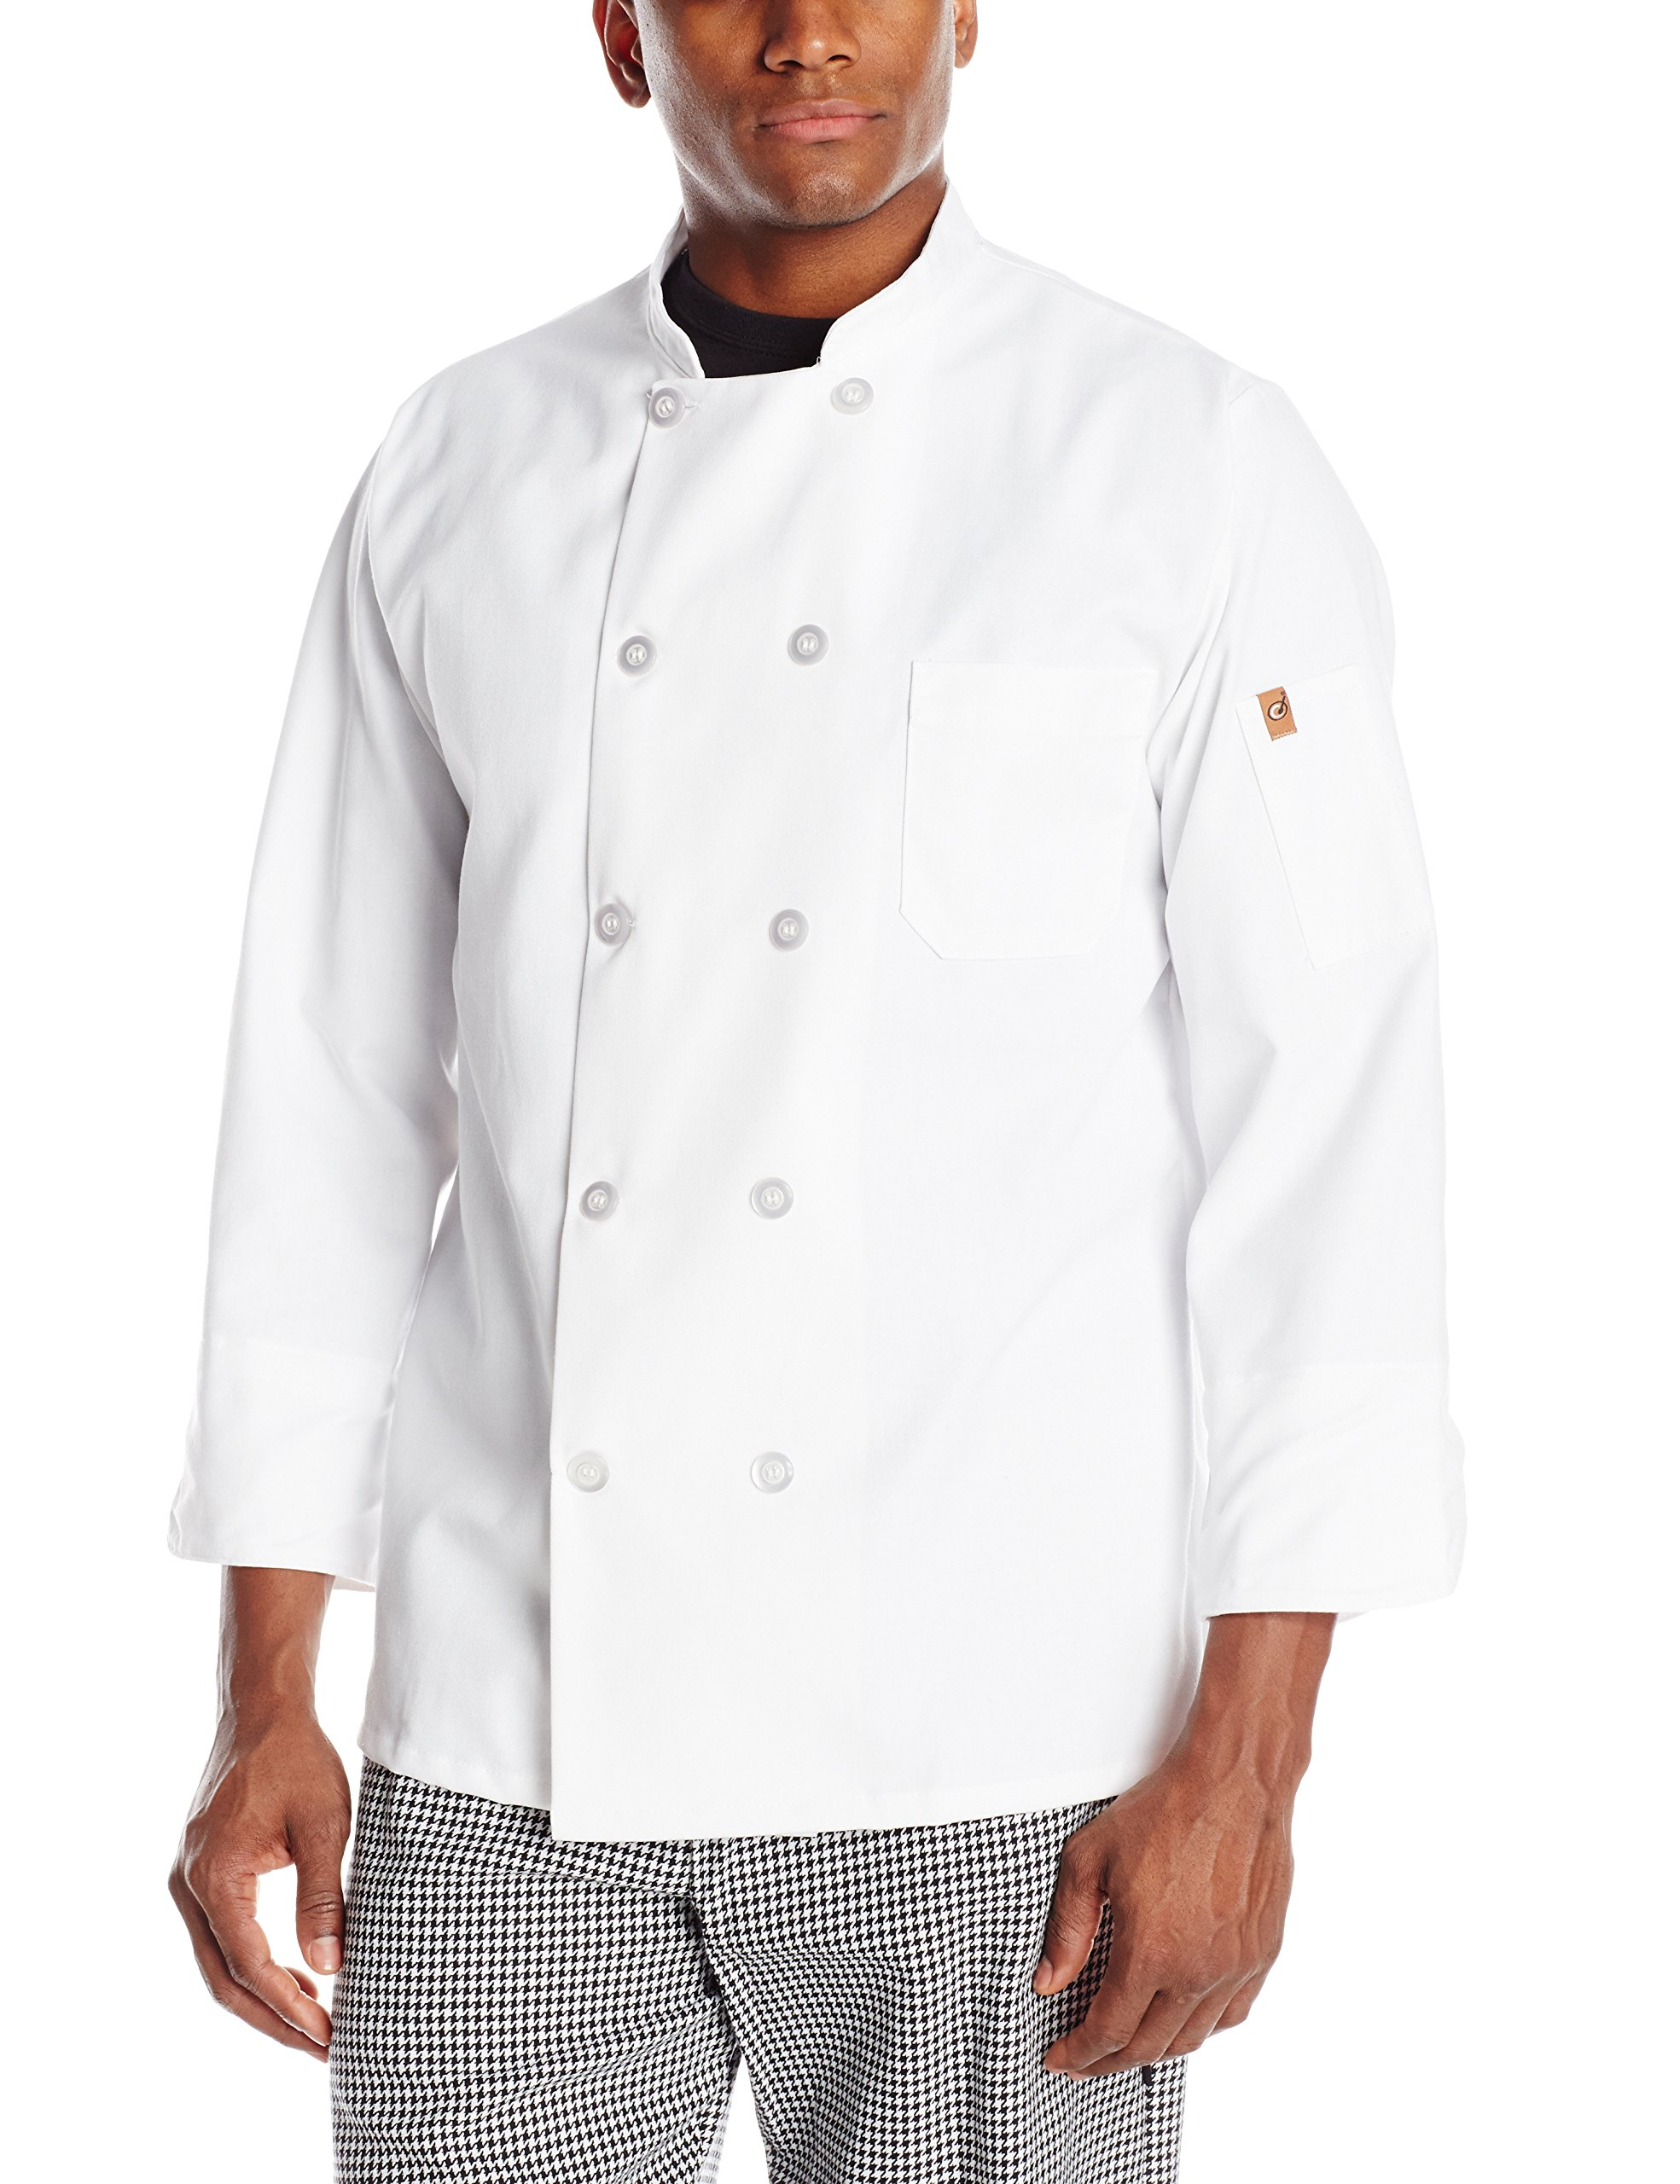 Red Kap Chef DesignsTen Pearl Button Chef Coat, White, X-Large